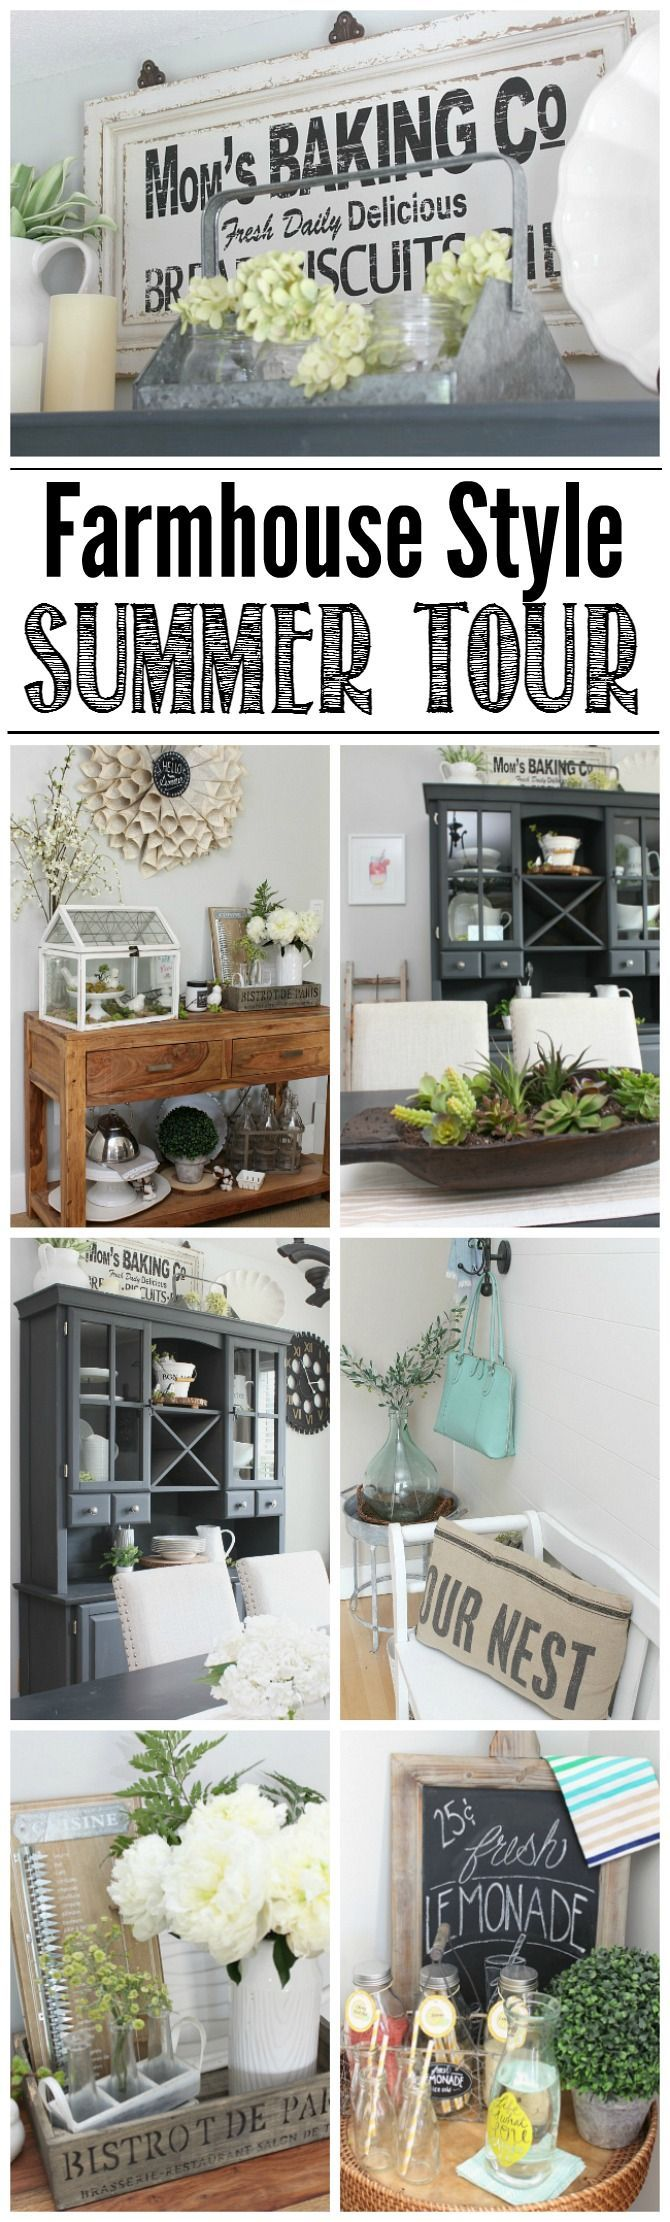 Beautiful farmhouse style summer home tour. Lots of easy decor ideas!